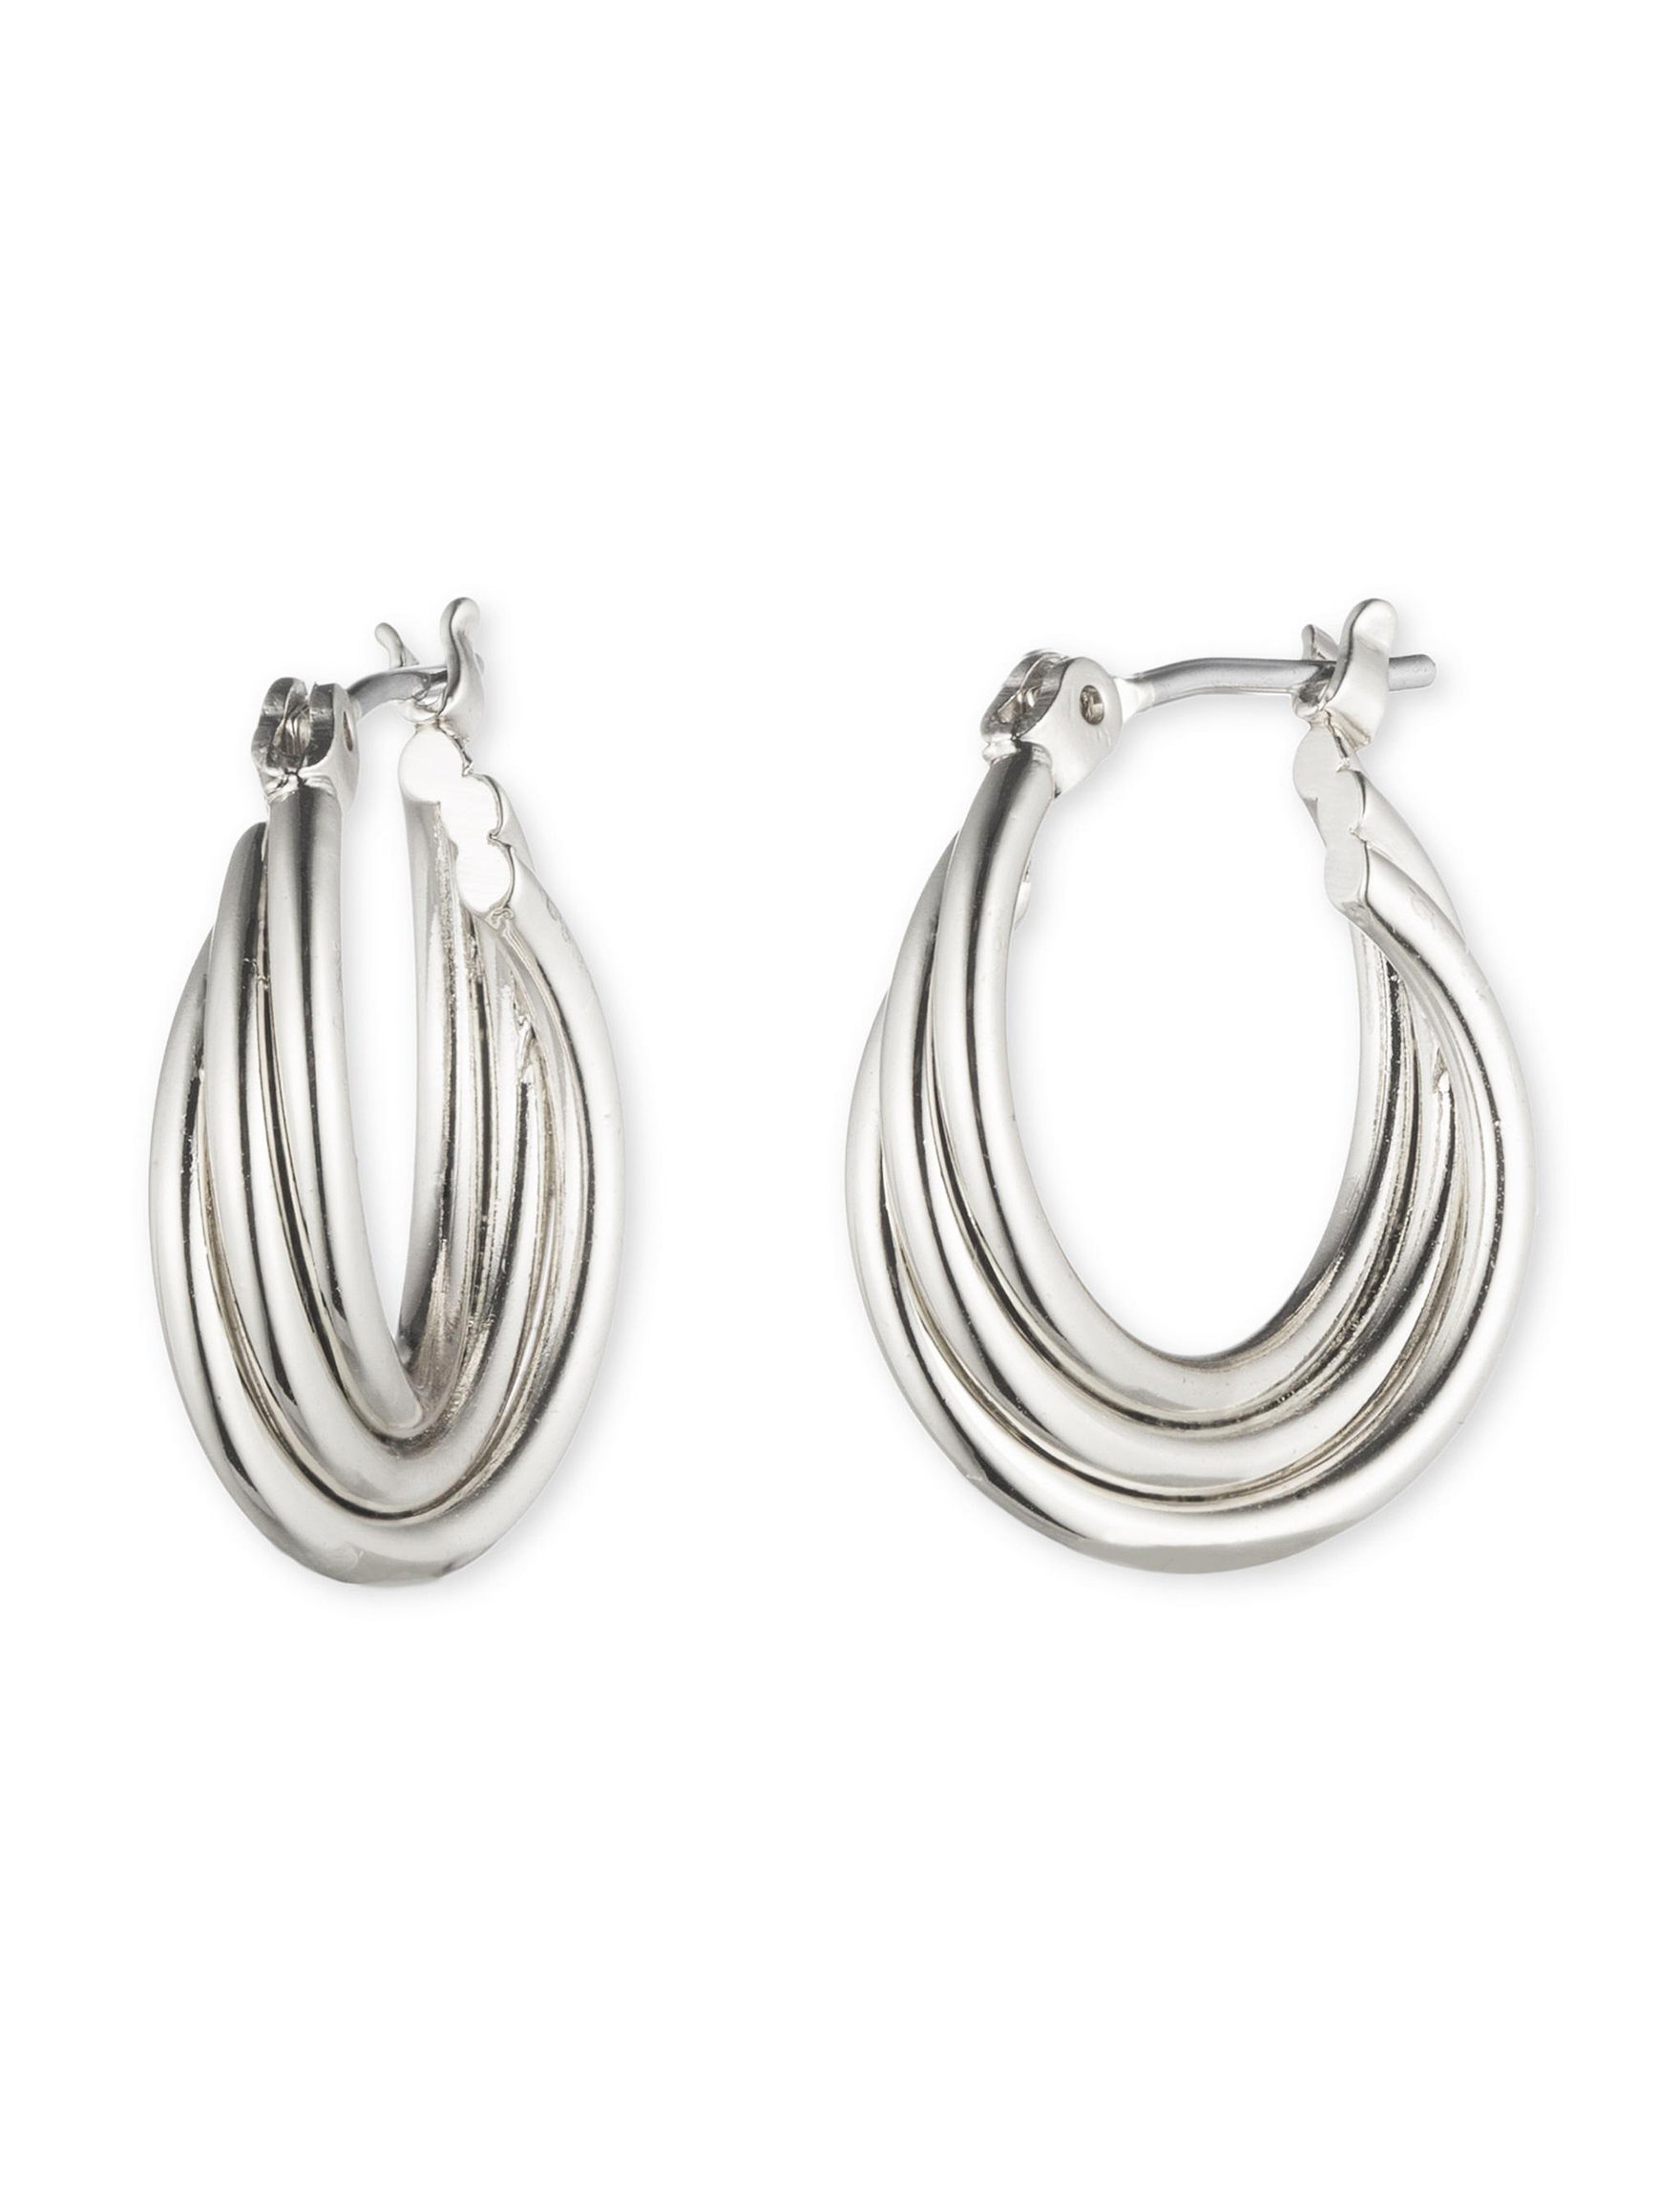 Nine West Silver Hoops Earrings Fashion Jewelry